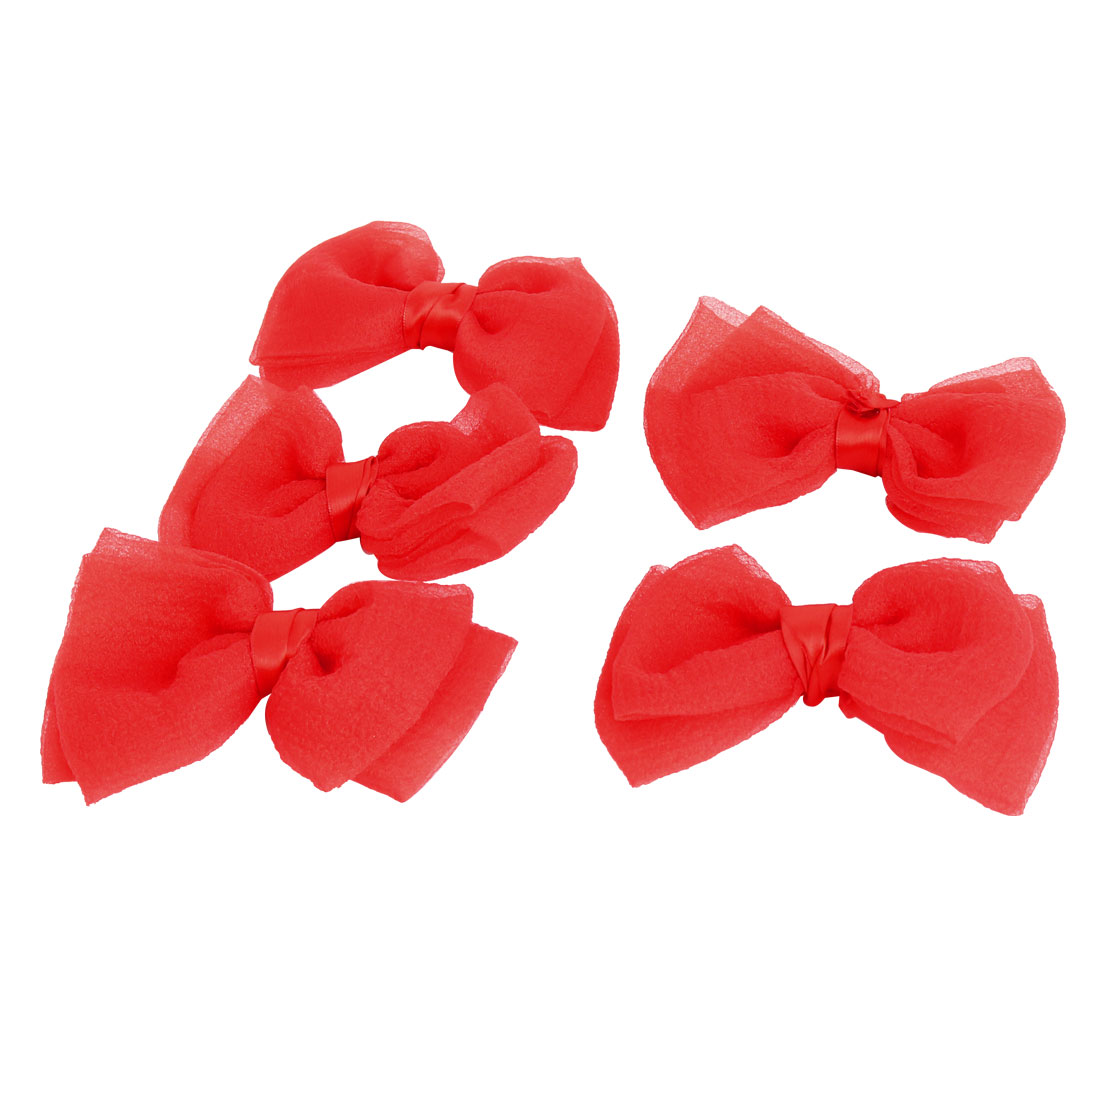 Boutique Bowknot Shaped Wholesale Hairclips Decoration Bows Red 5 PCS